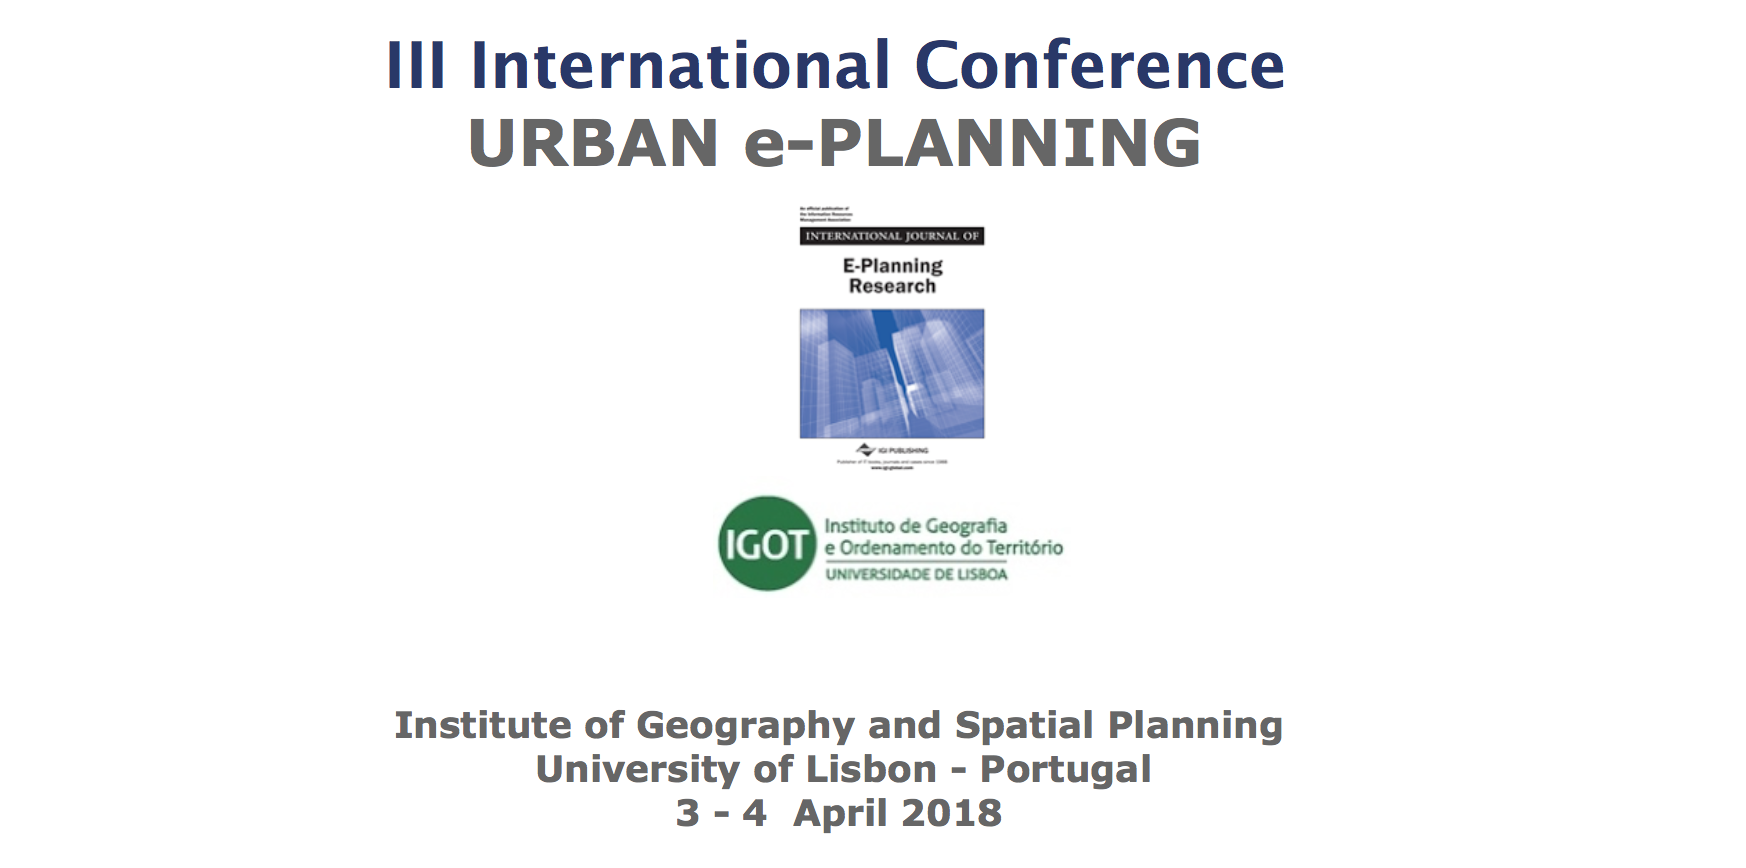 International Journal of E-Planning Research' – Annual Conference